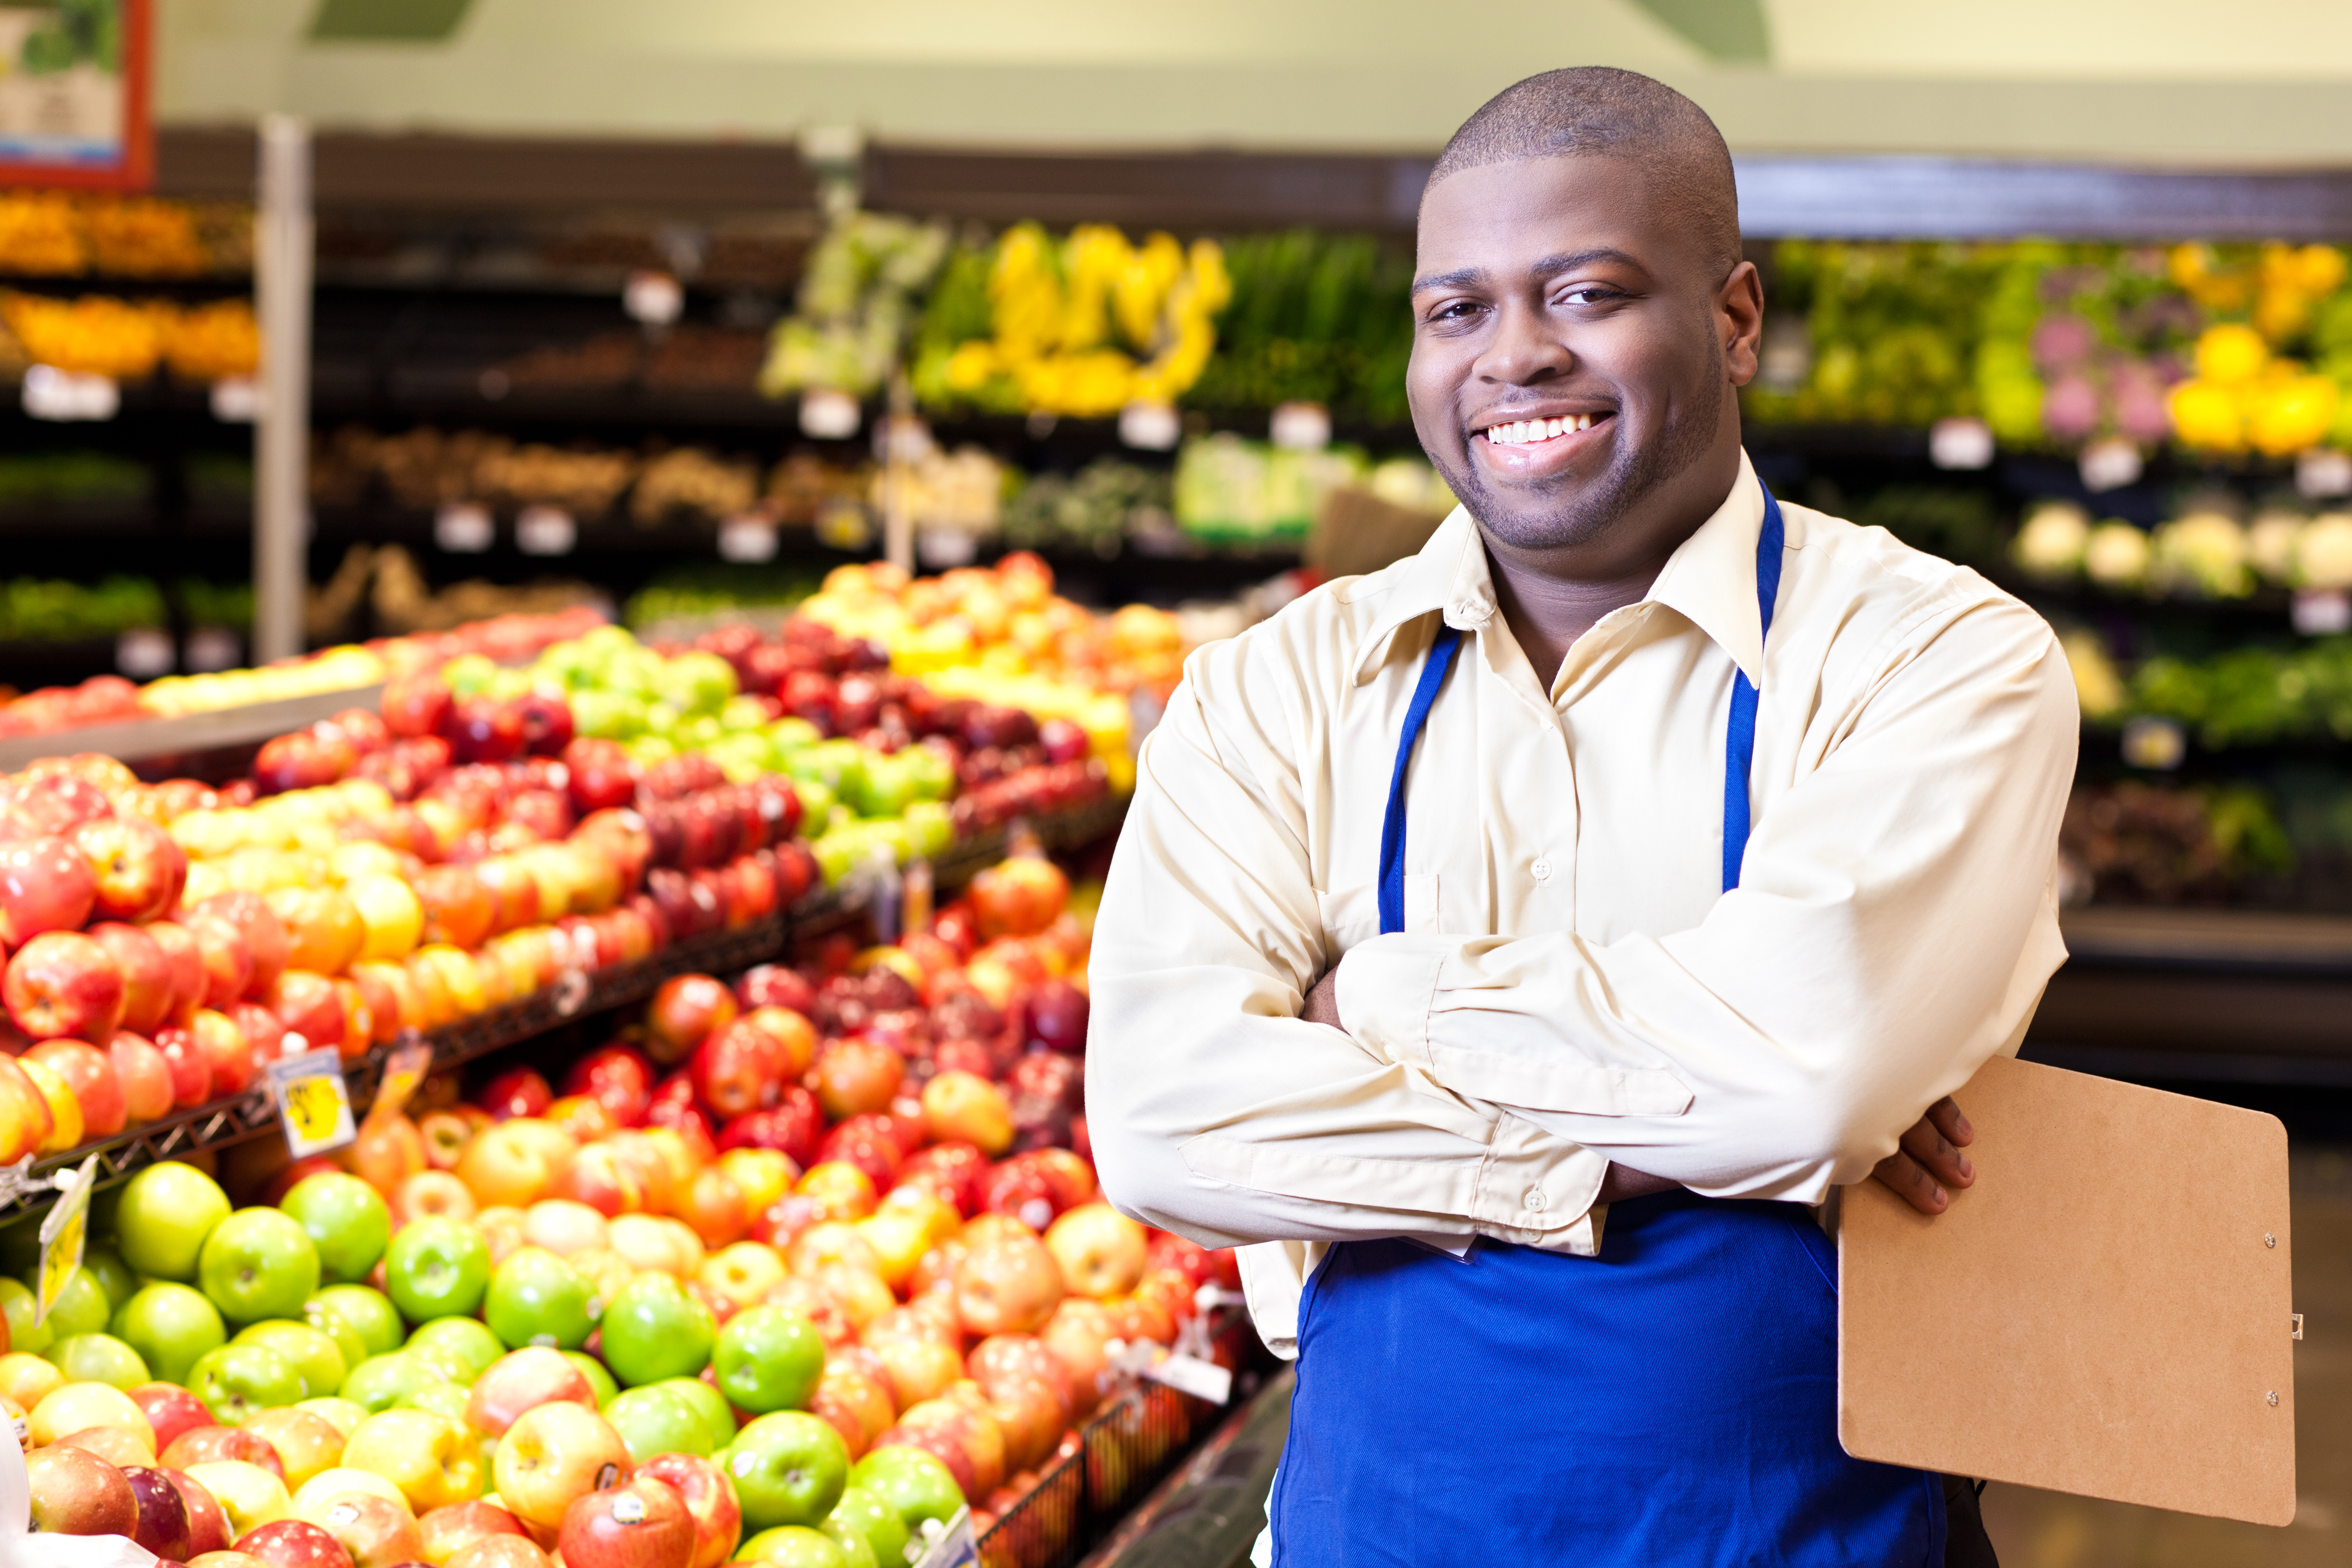 What Are The Duties Of A Supermarket Customer Service Assistant